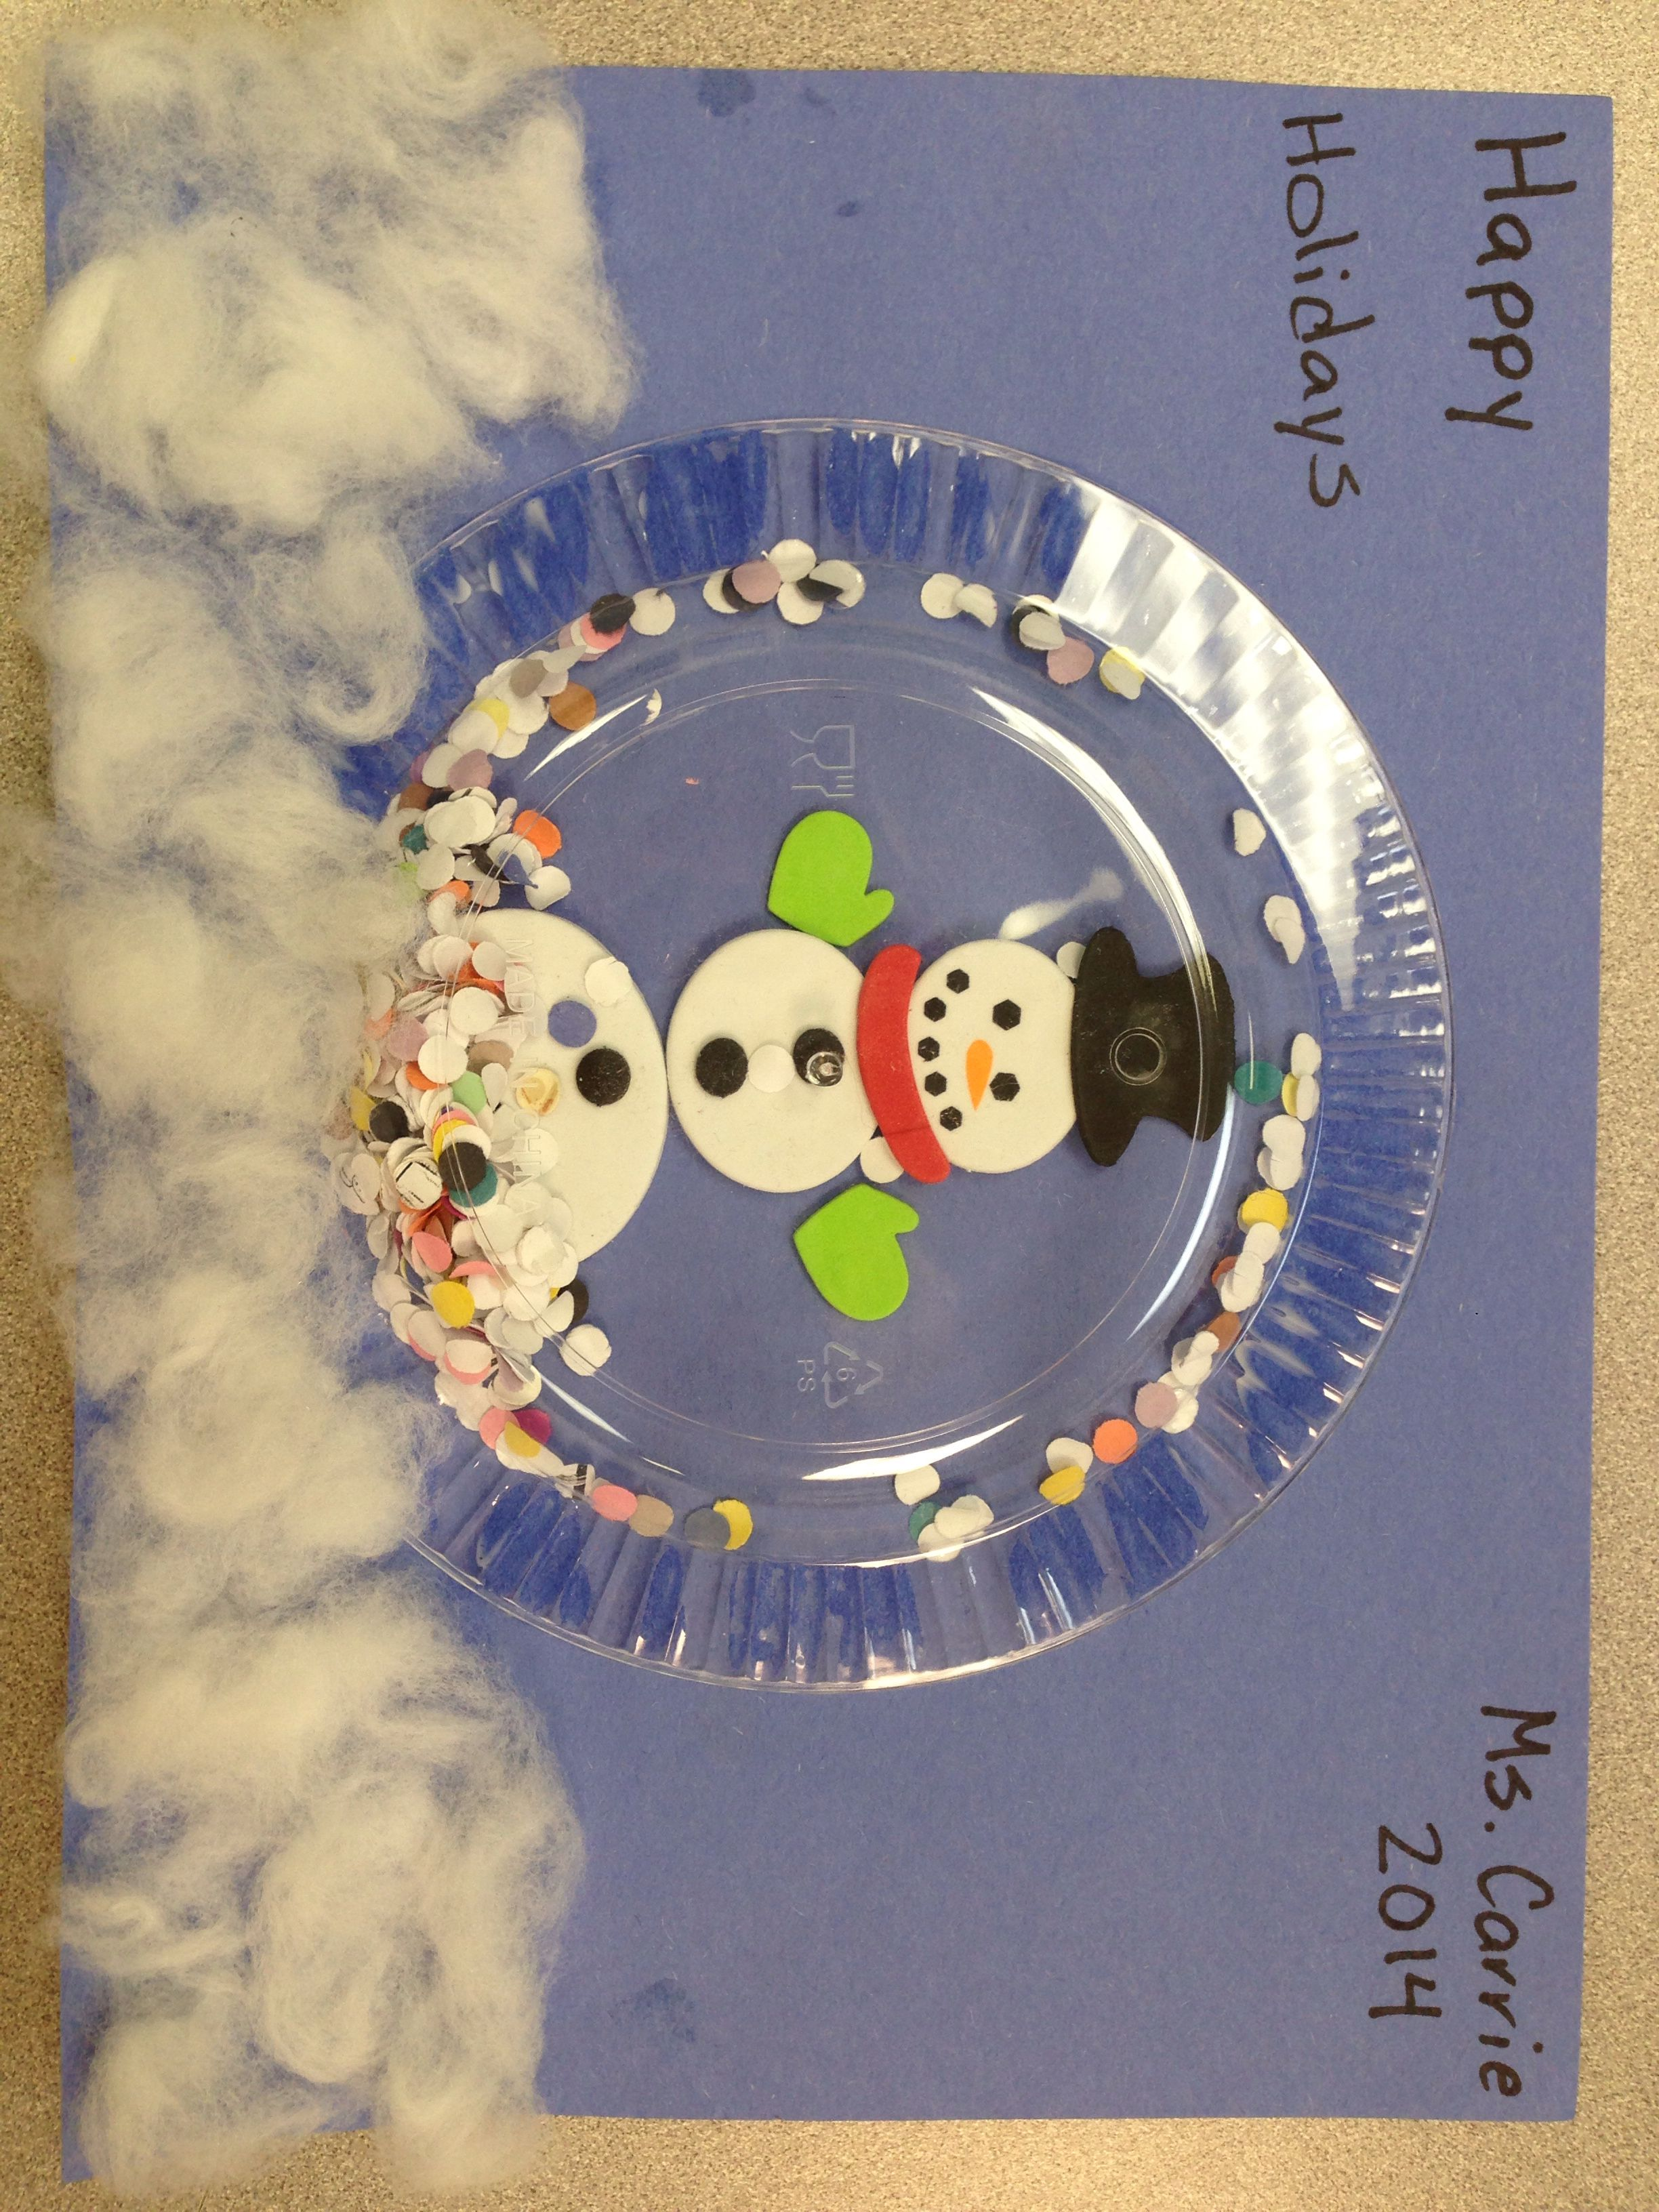 Instructions 6  clear plastic plate foam snowman pieces hole punch collections cotton balls. 1 Glue snowman together and decorate 2 place a small ... & Happy Holidays Snowman Snow globe. Instructions: 6